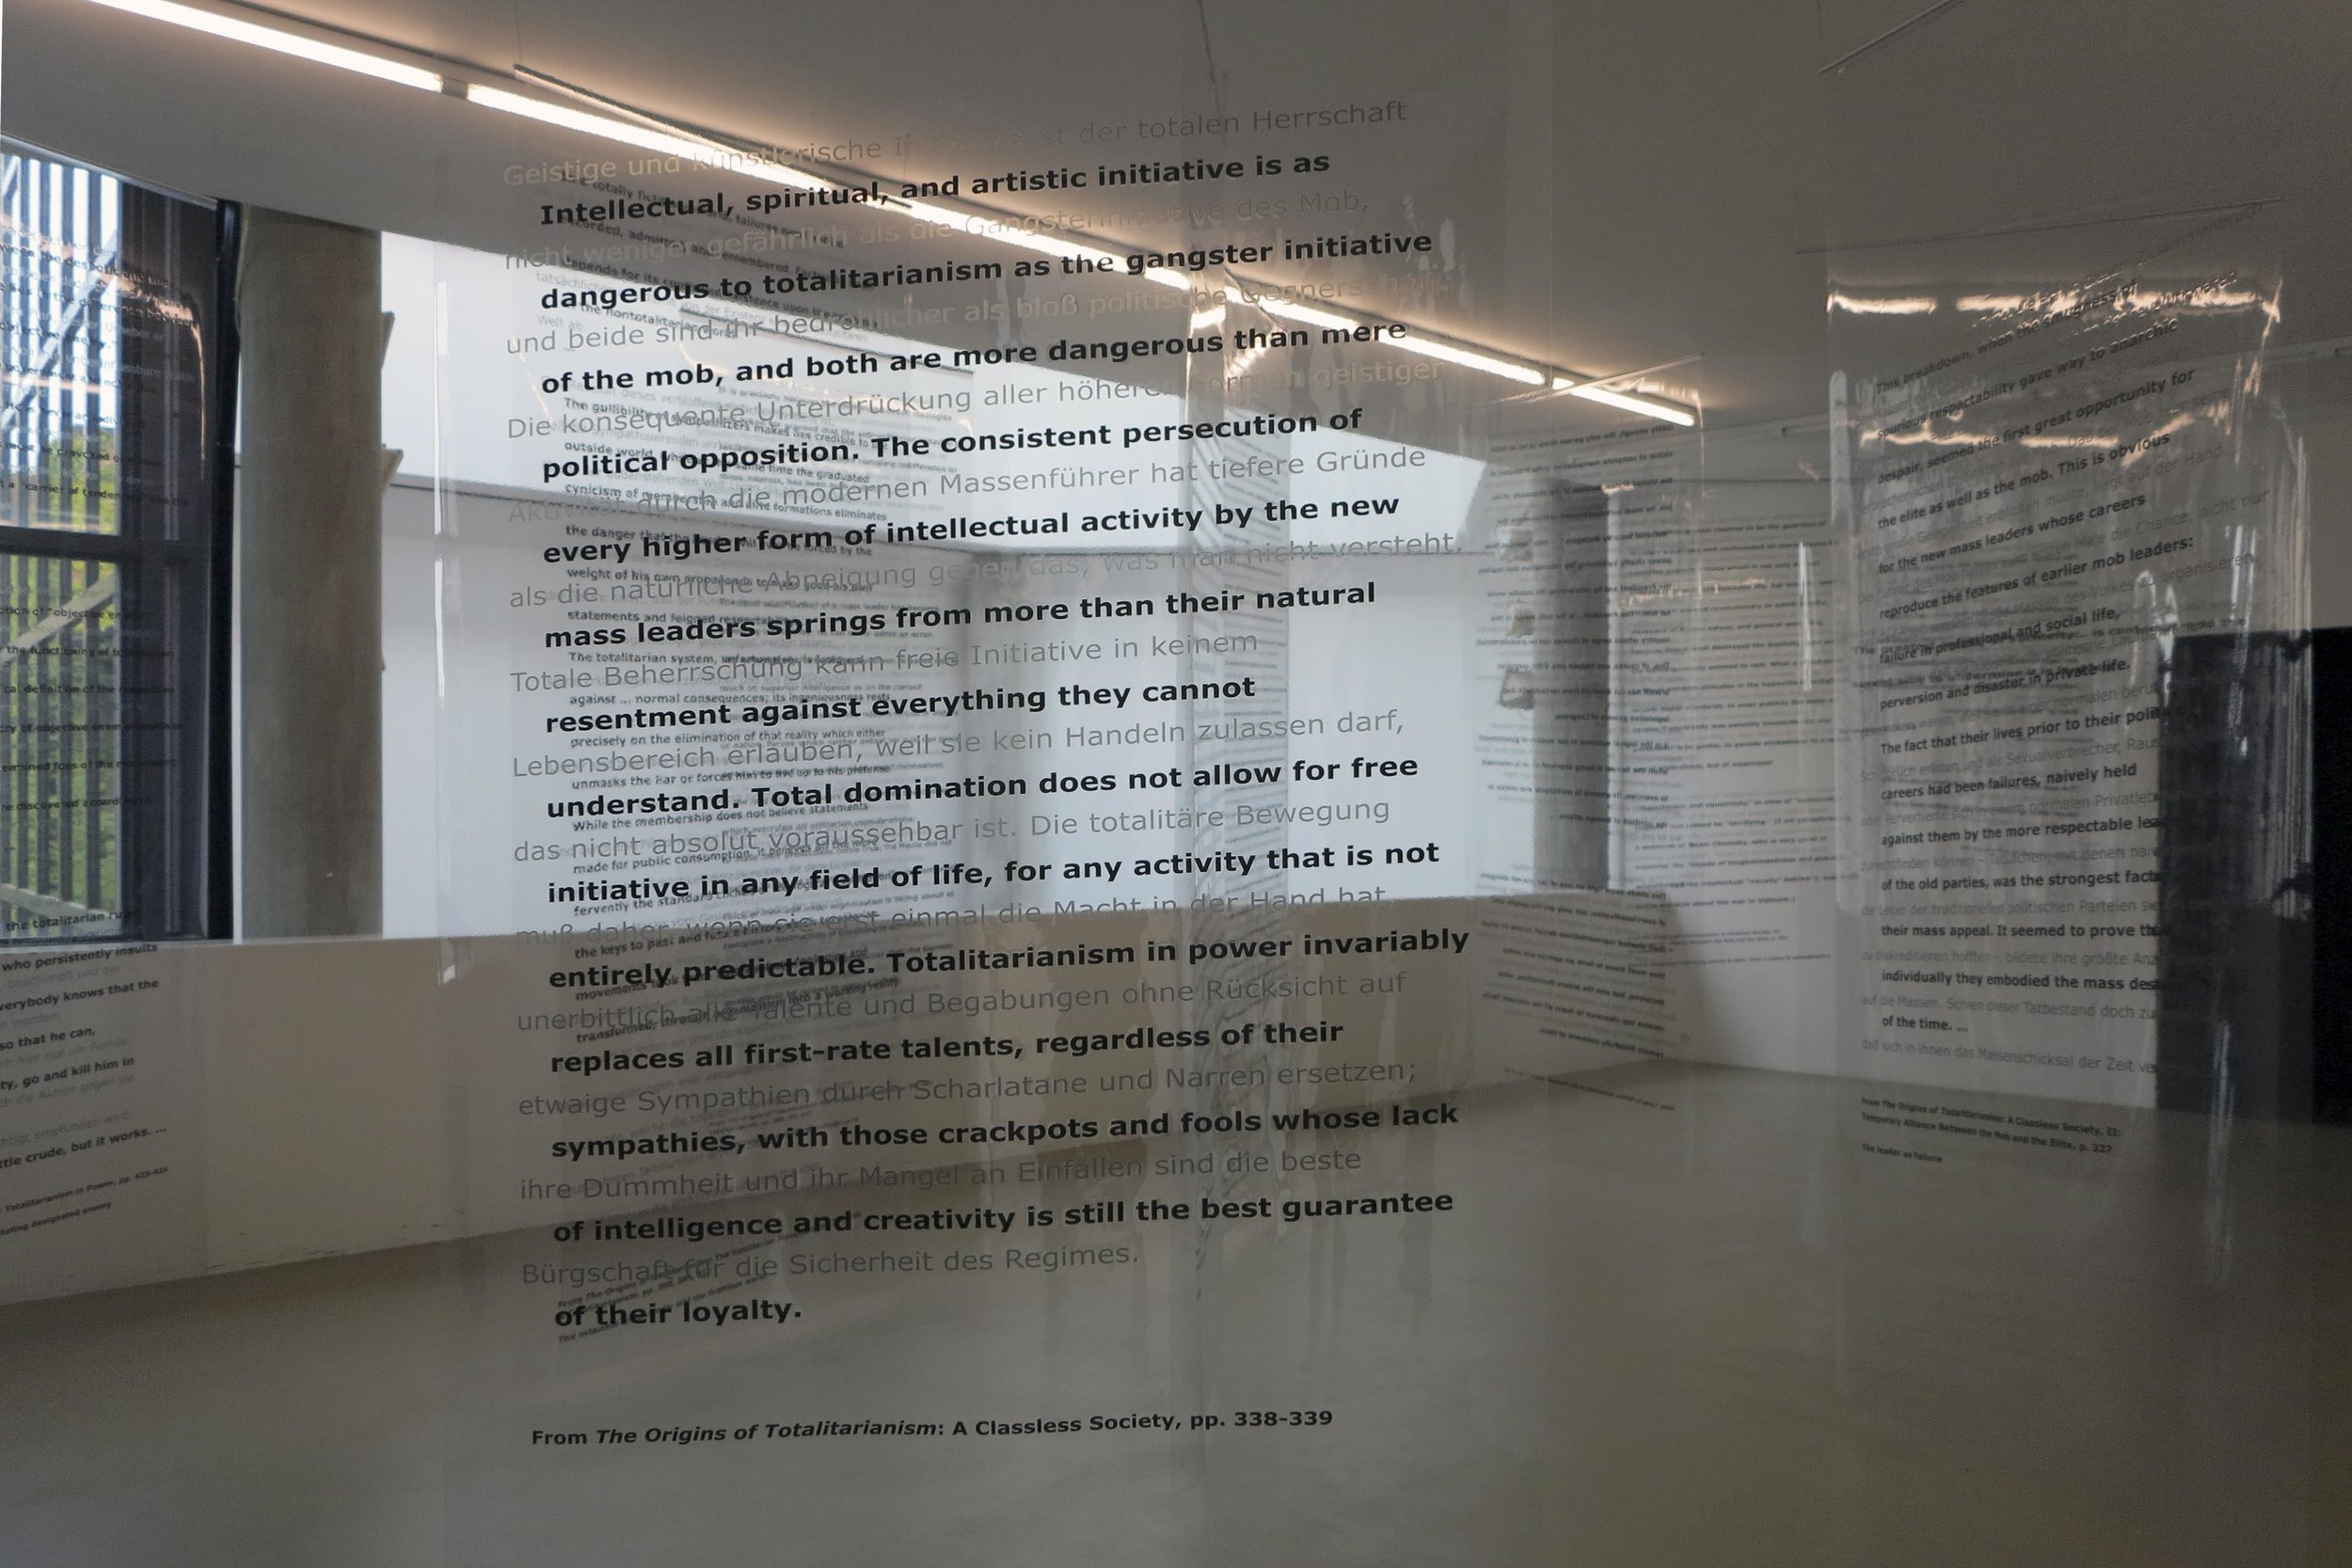 Martha Rosler, detail of Reading Hannah Arendt (Politically, for an Artist in the 21st Century), 2006, installation with excerpts from Hannah Arendt's writings, in English and German, on transparent vinyl panels. Artwork © Martha Rosler